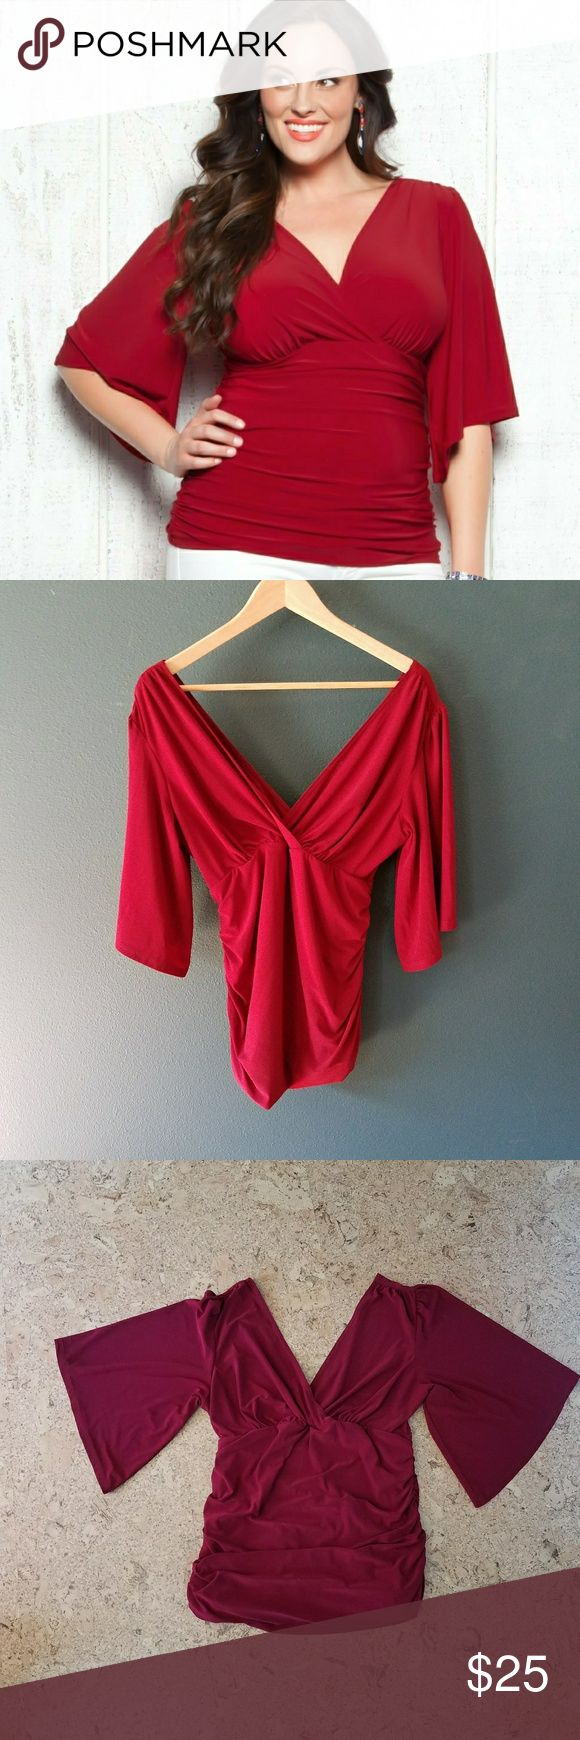 Kiyonna red kiera top Red and ready! This is an amazing top from a company that is perfecting dressing the curvy woman. If you are a buxom beauty, this will show off your best assets and conceal any midriff mishaps with forgiving ruching. Loose modernized butterfly-style sleeves cover upper arms. Kiyonna Tops